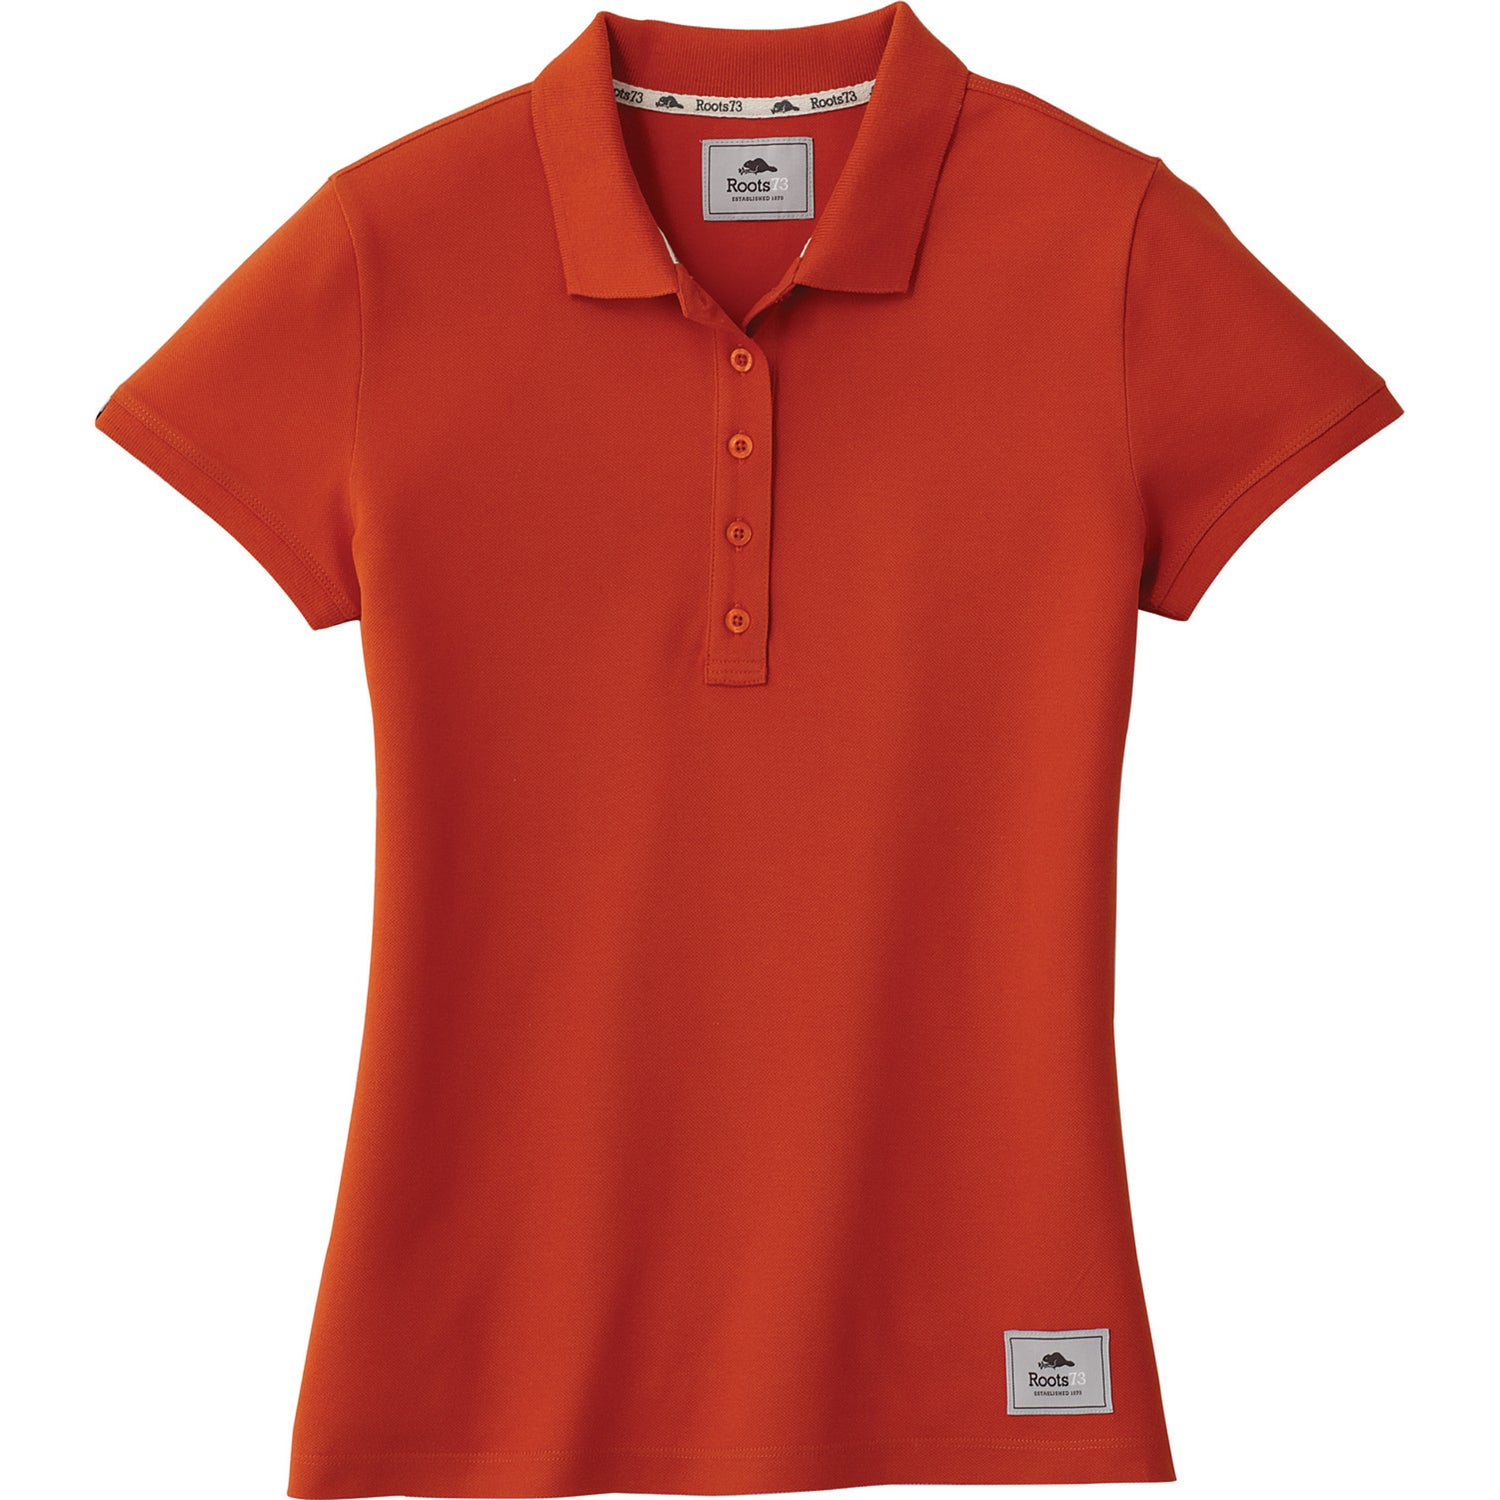 Promotional women 39 s mapleton roots73 short sleeve polo for Custom embroidered polo shirts no minimum order